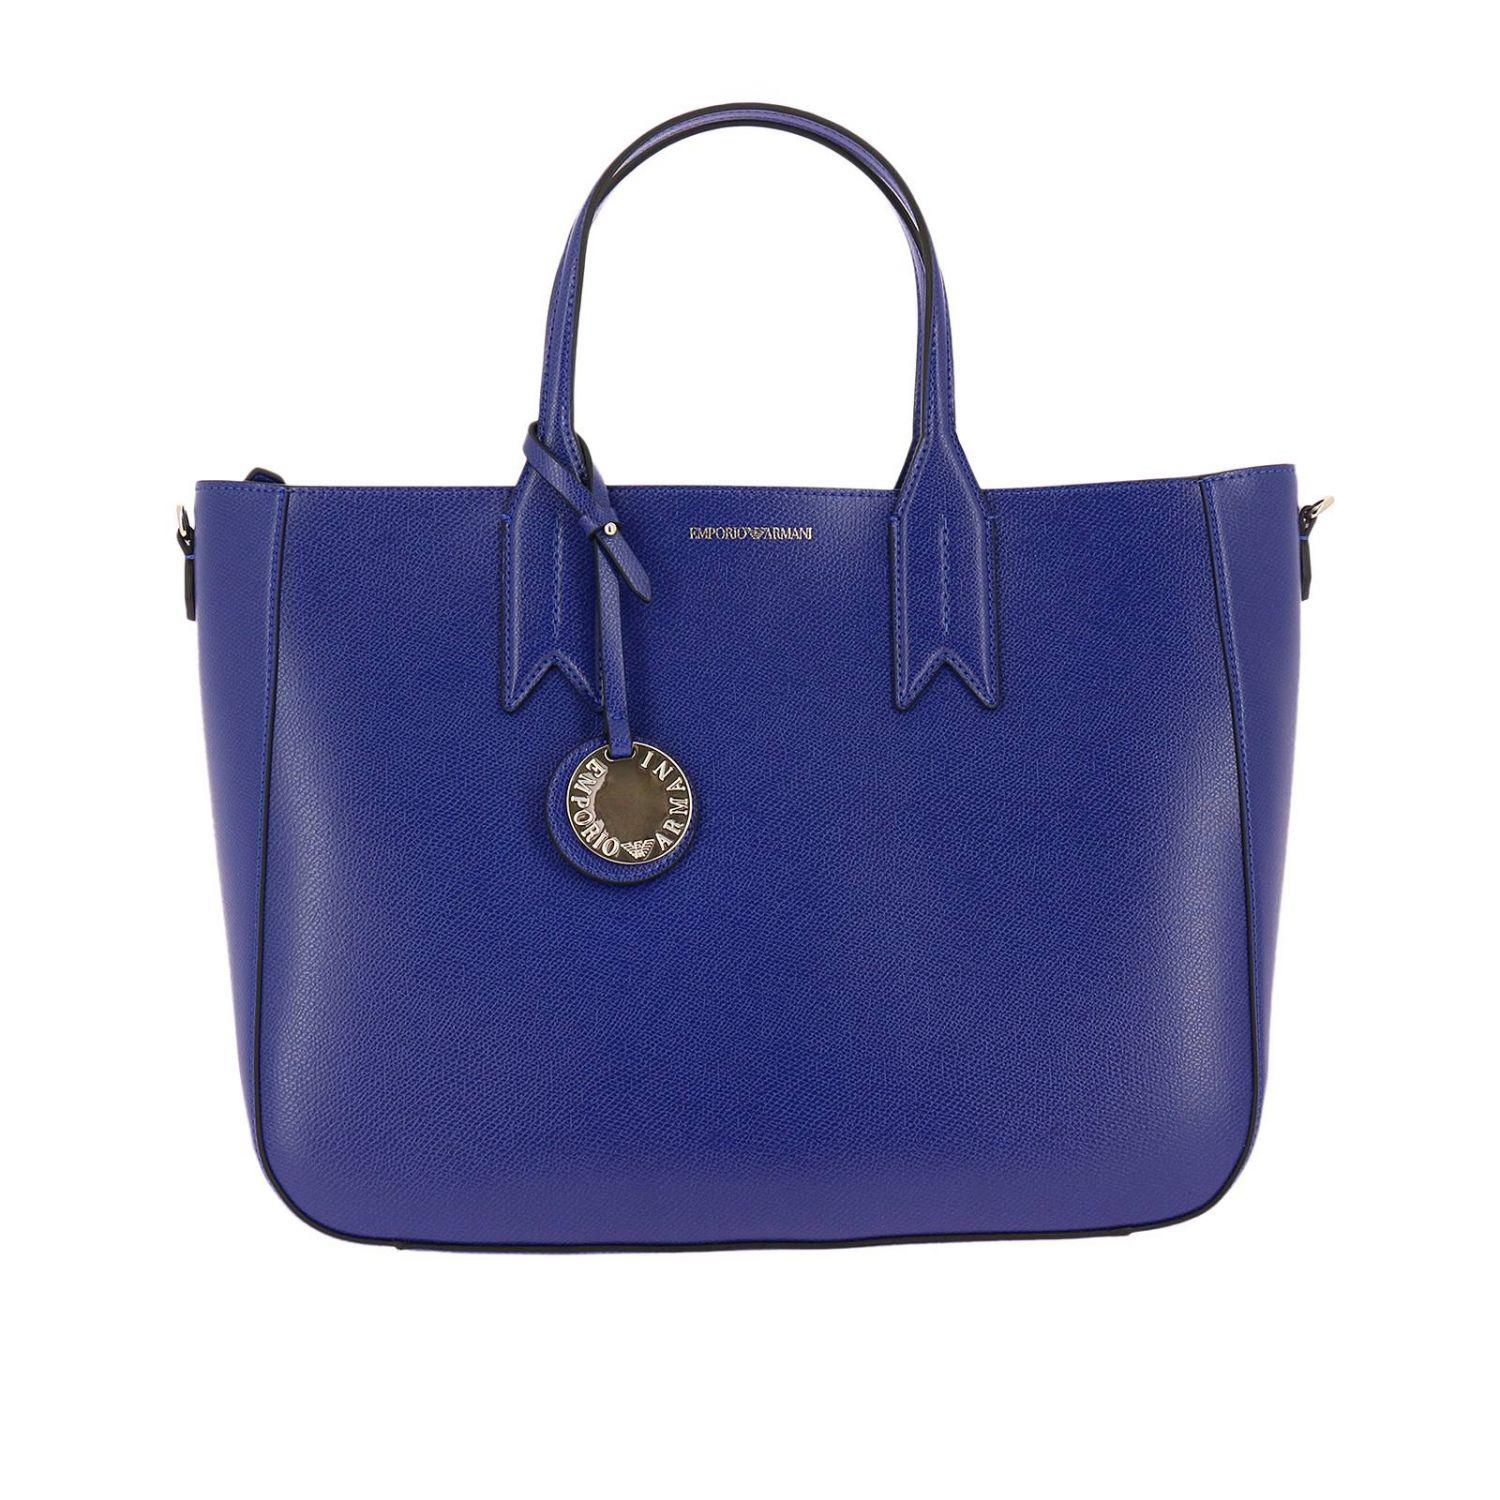 Lyst - Emporio Armani Handbag Shoulder Bag Women in Blue f1334294c6048